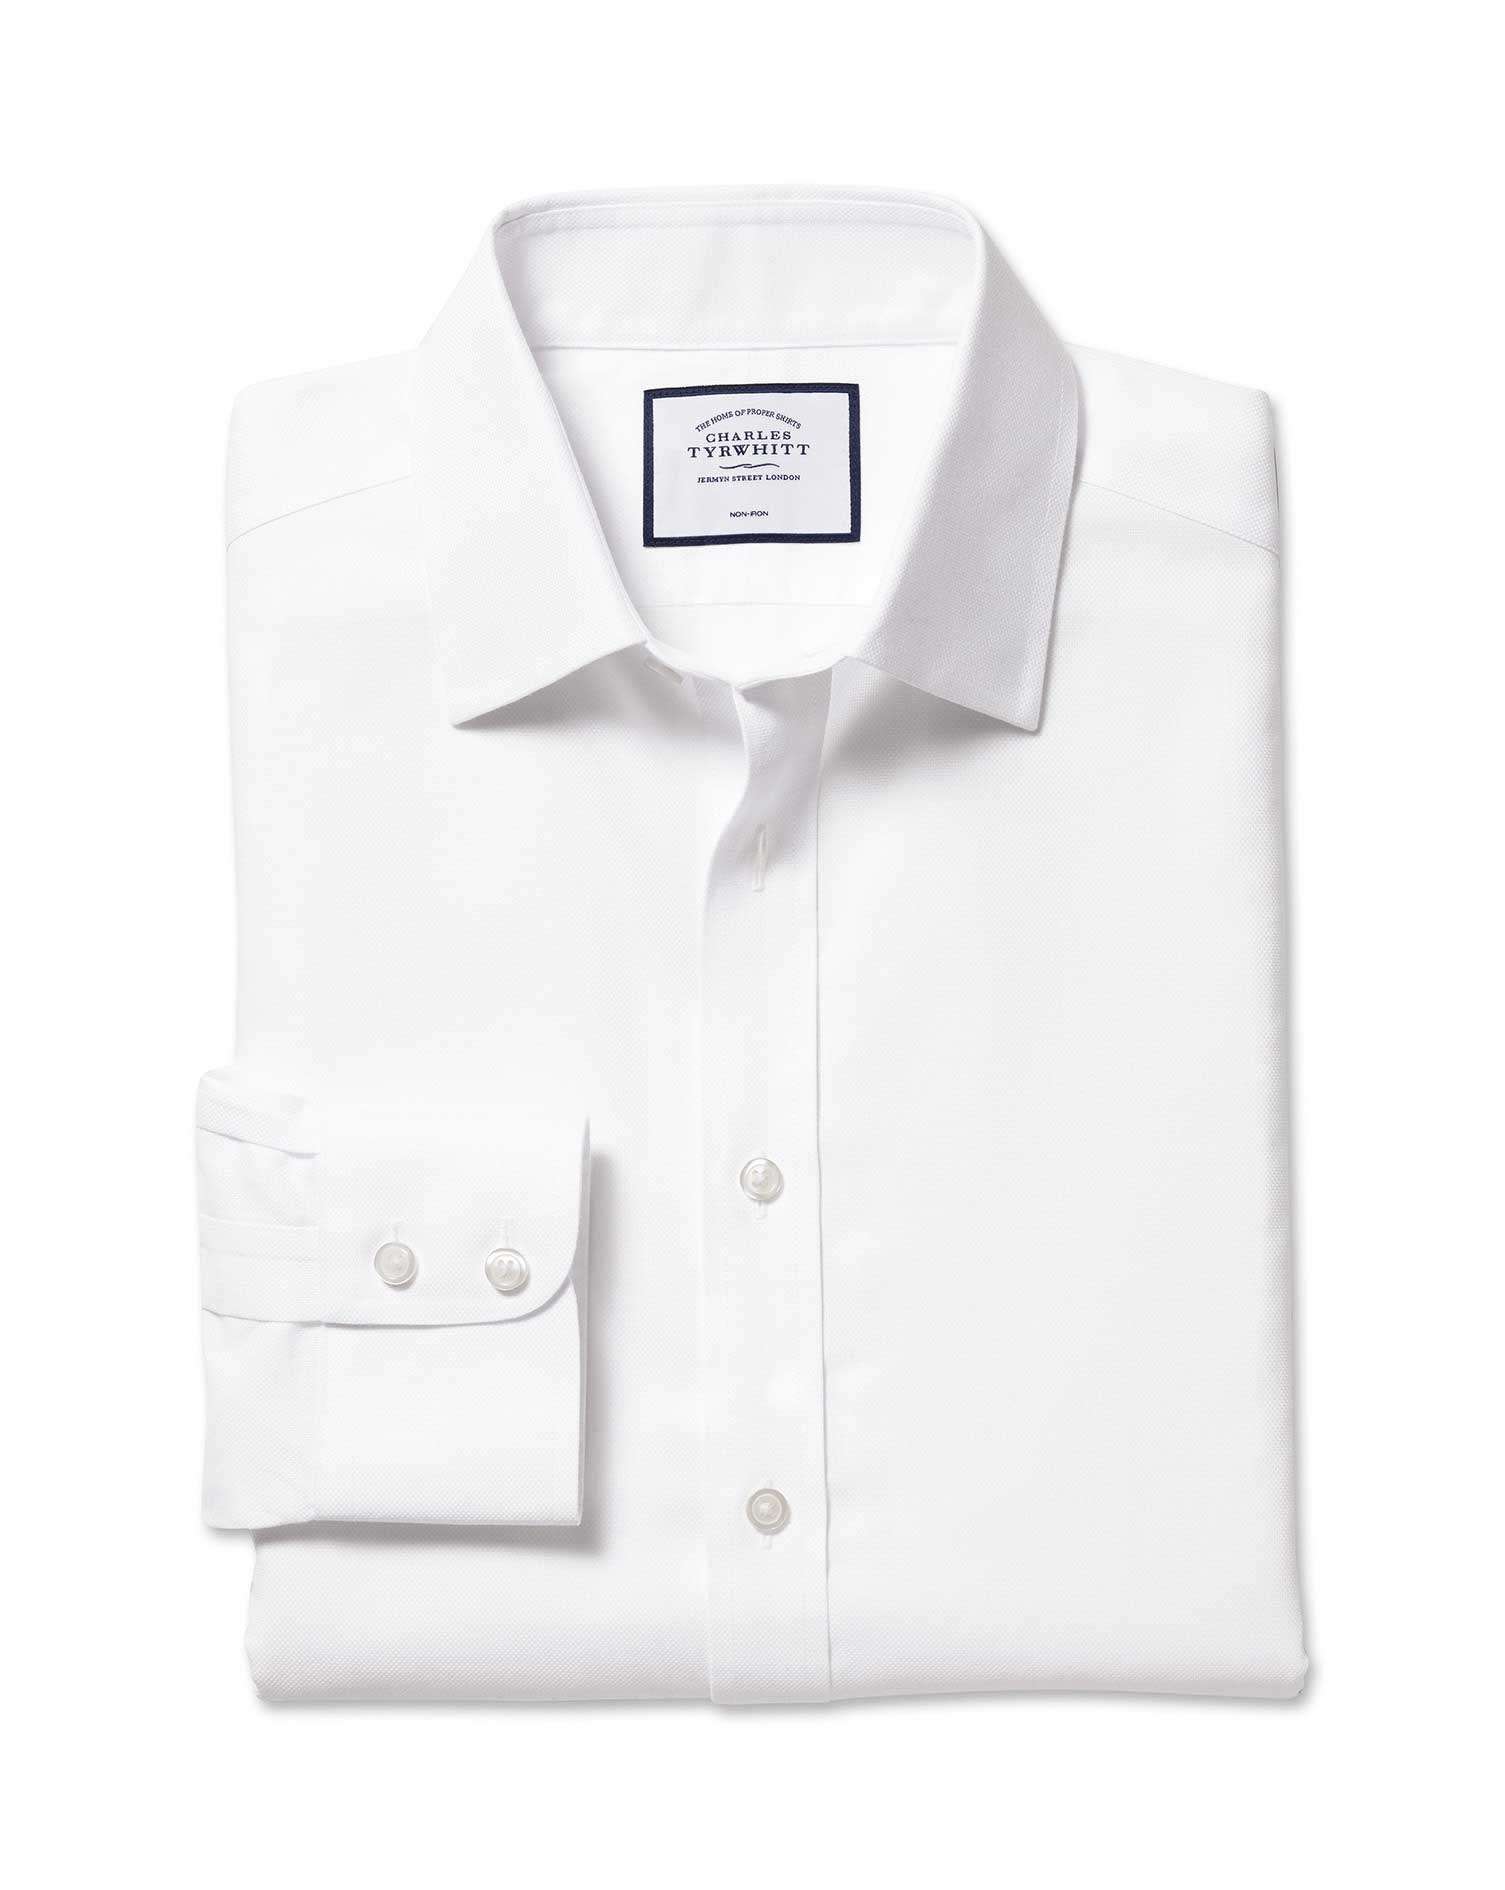 Slim Fit Non-Iron Royal Panama White Cotton Formal Shirt Single Cuff Size 16/38 by Charles Tyrwhitt